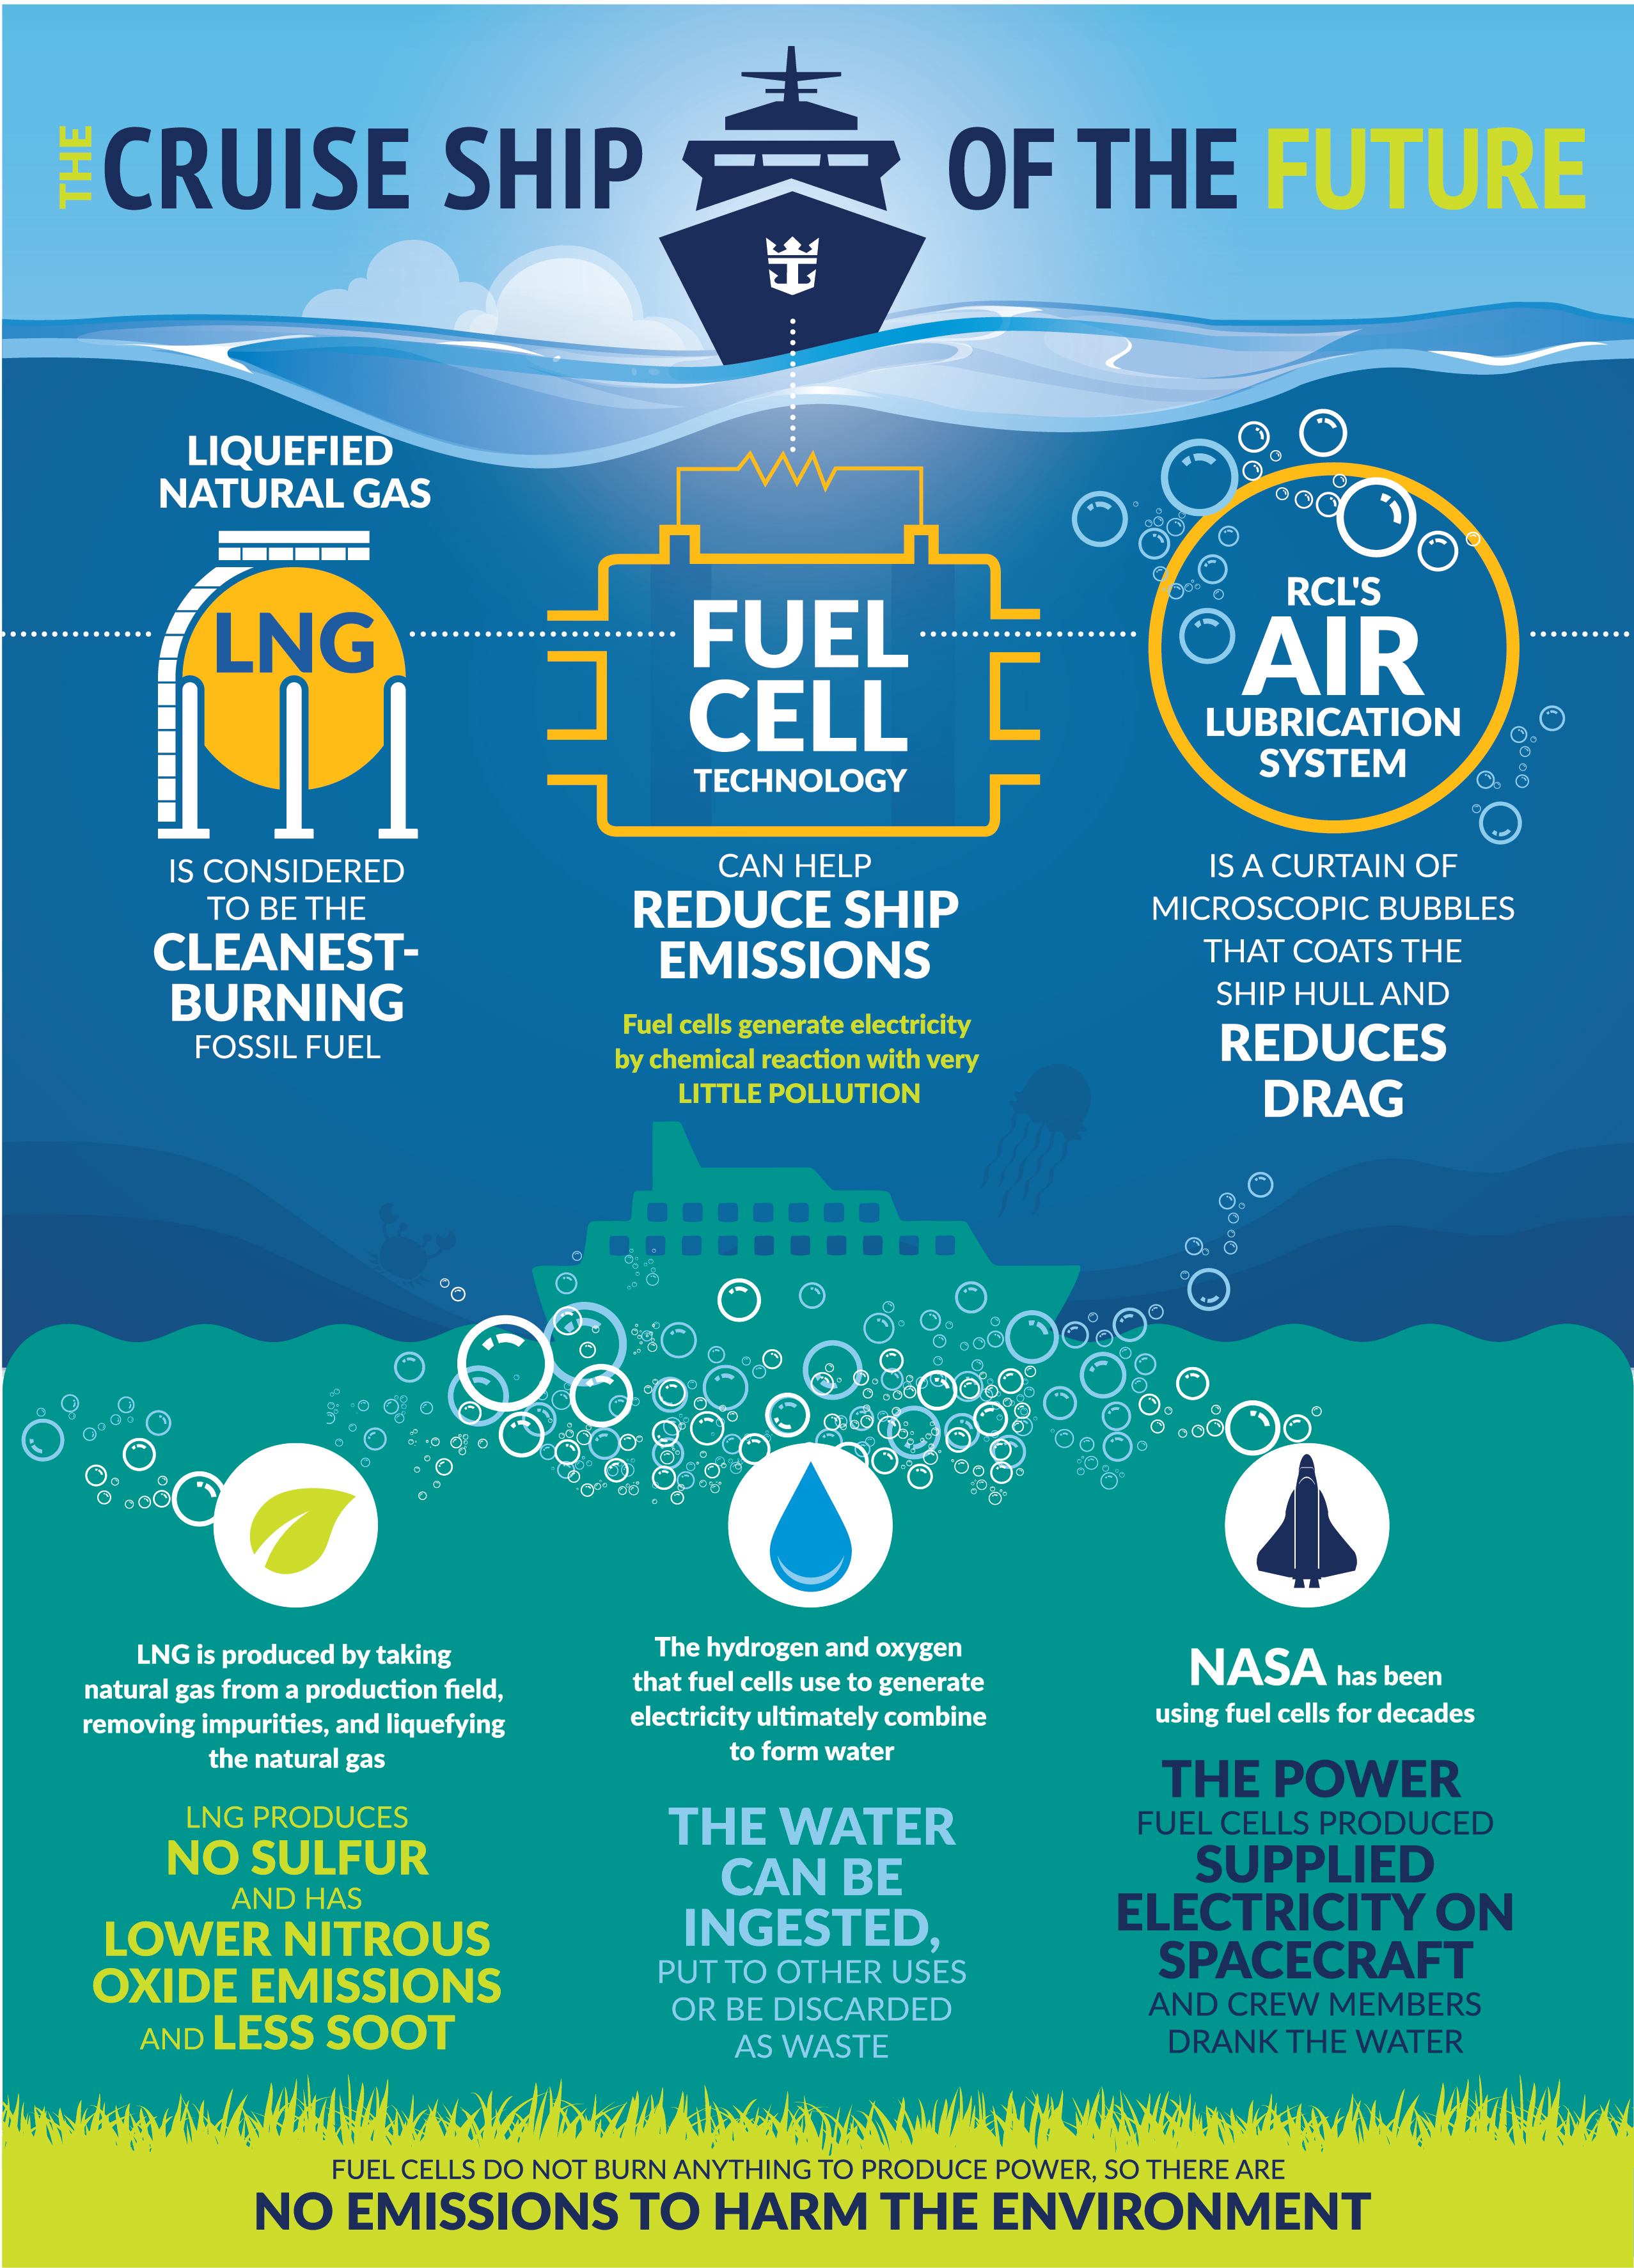 Green cruising cruise critic infographic for royal caribbeans air lubrication system falaconquin